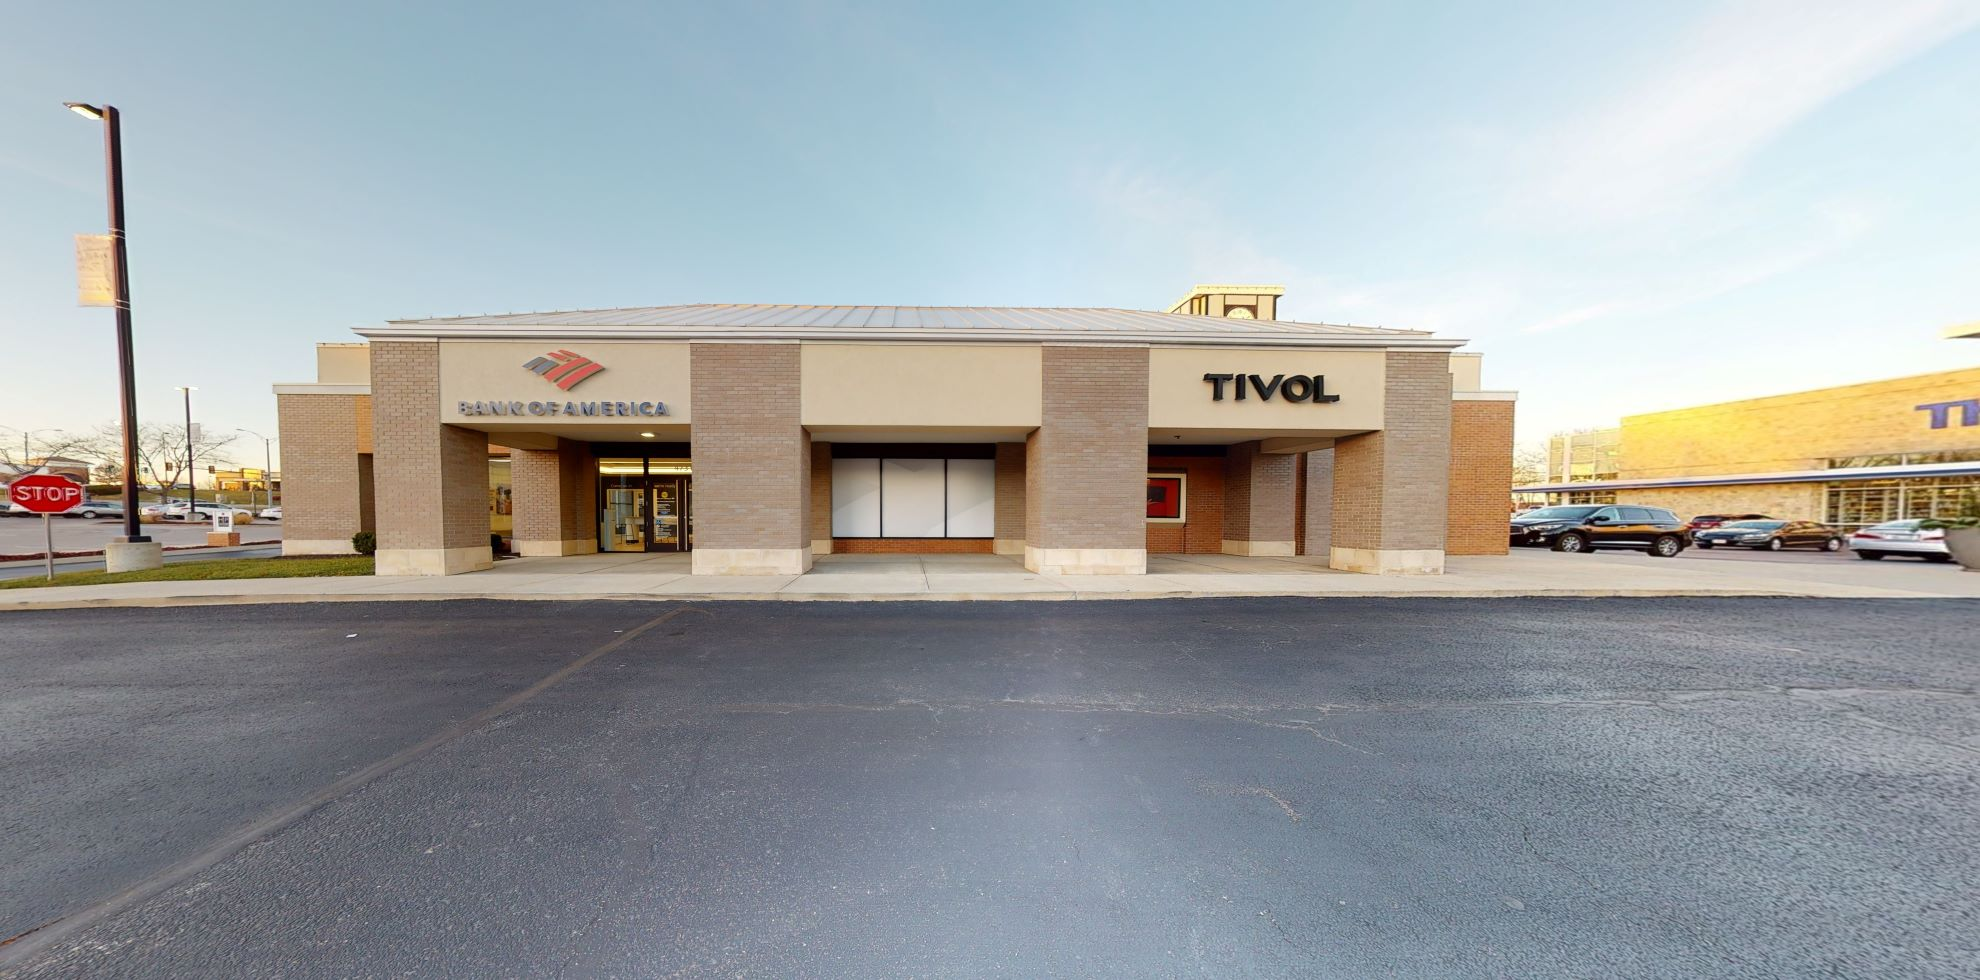 Bank of America Advanced Center with walk-up ATM   4731 W 119th St, Overland Park, KS 66209